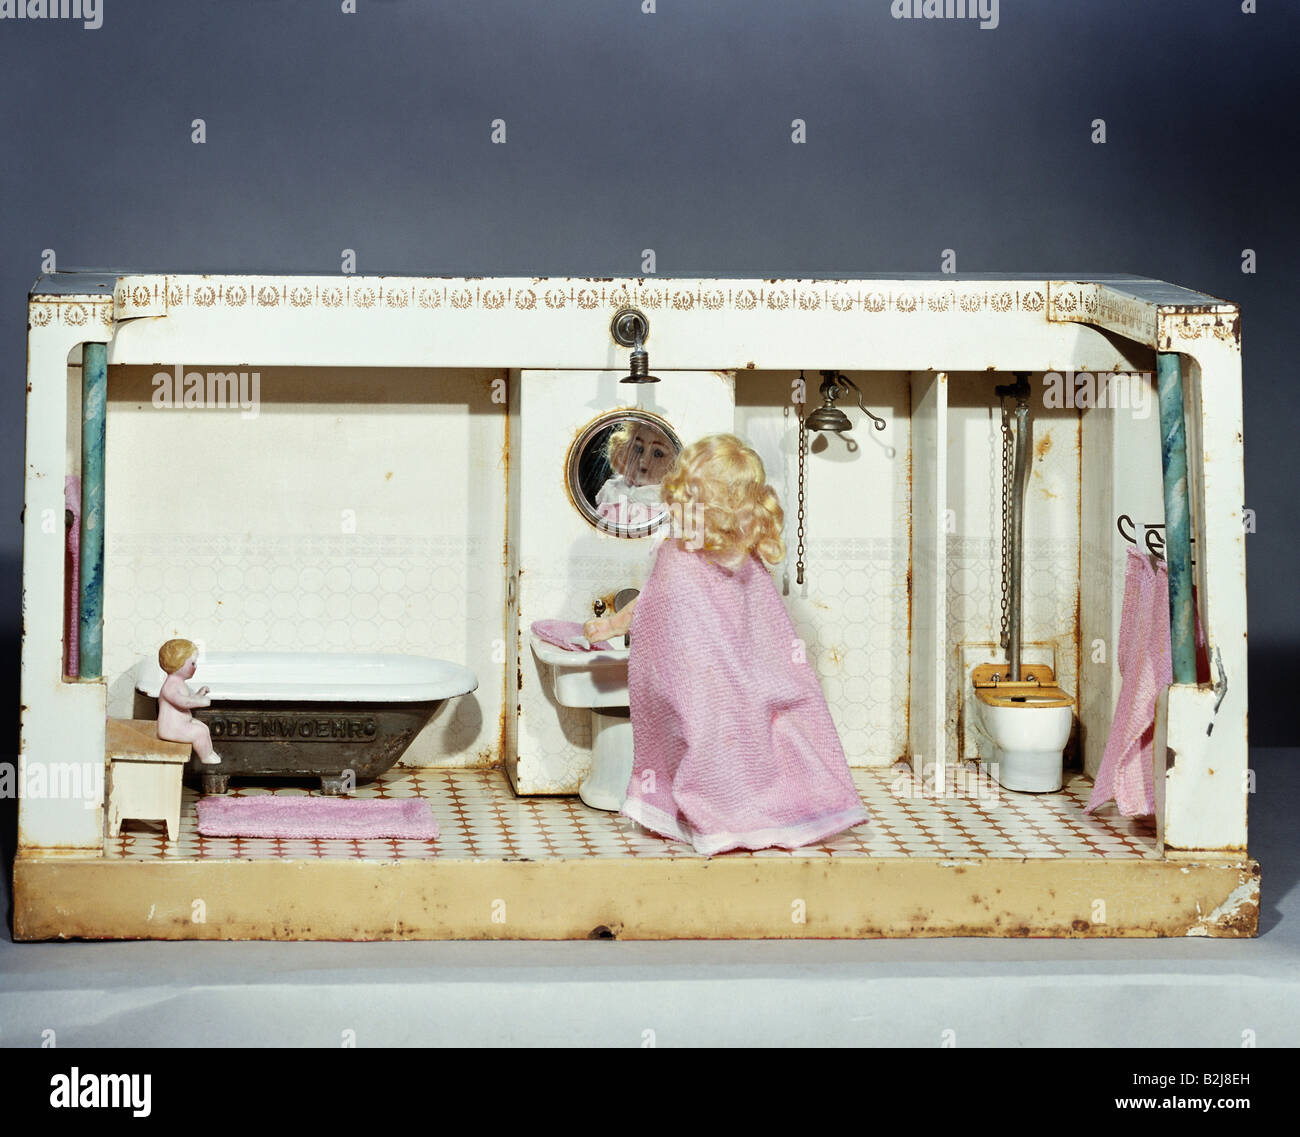 toys, dolls, dollhouse, bathroom, South Germany, circa 1900/1915, Additional-Rights-Clearances-NA - Stock Image